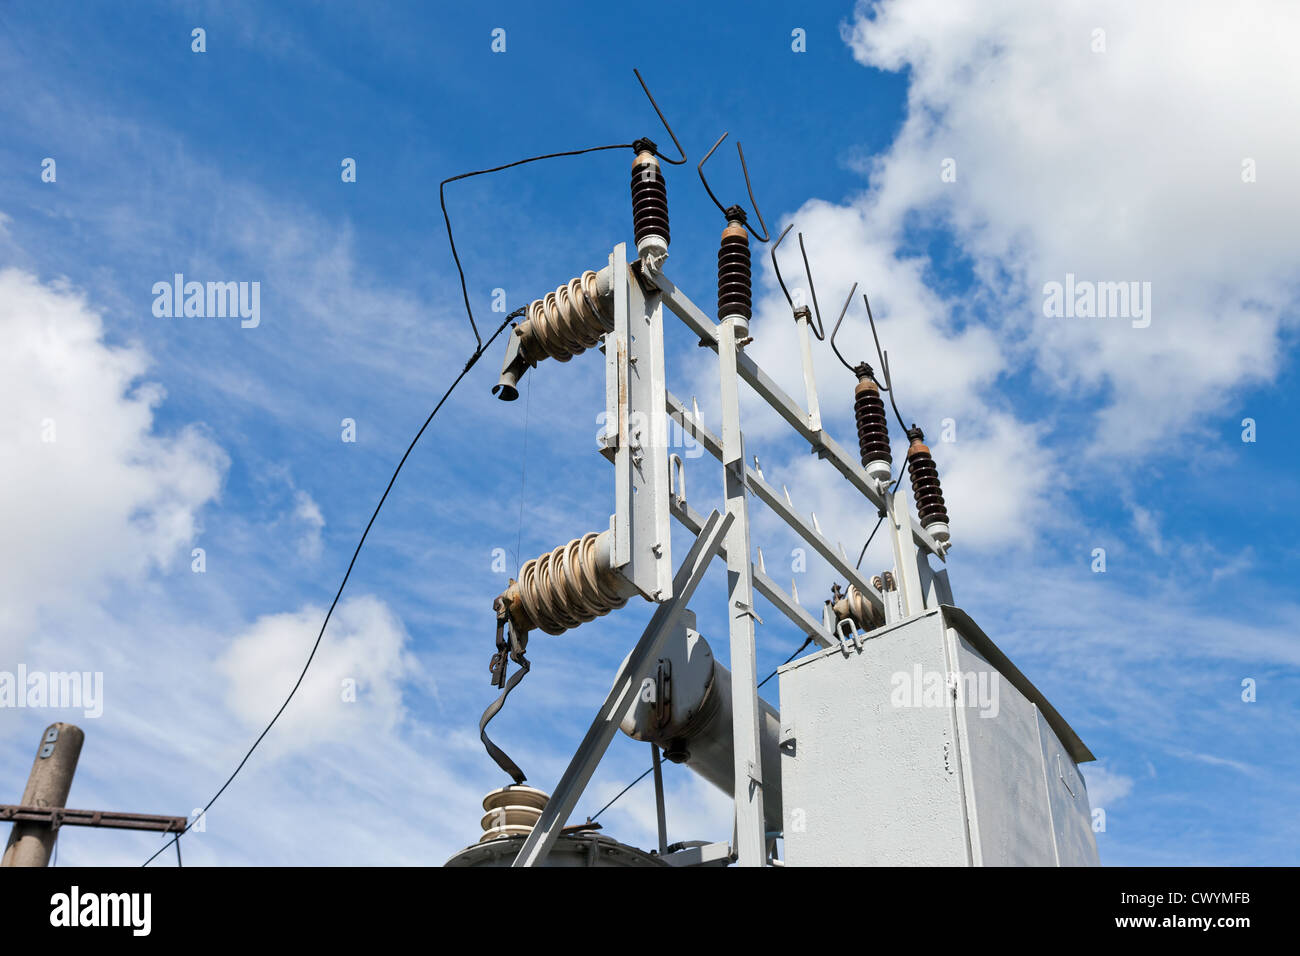 Energy and technology: electrical post by the road with power line cables, - Stock Image